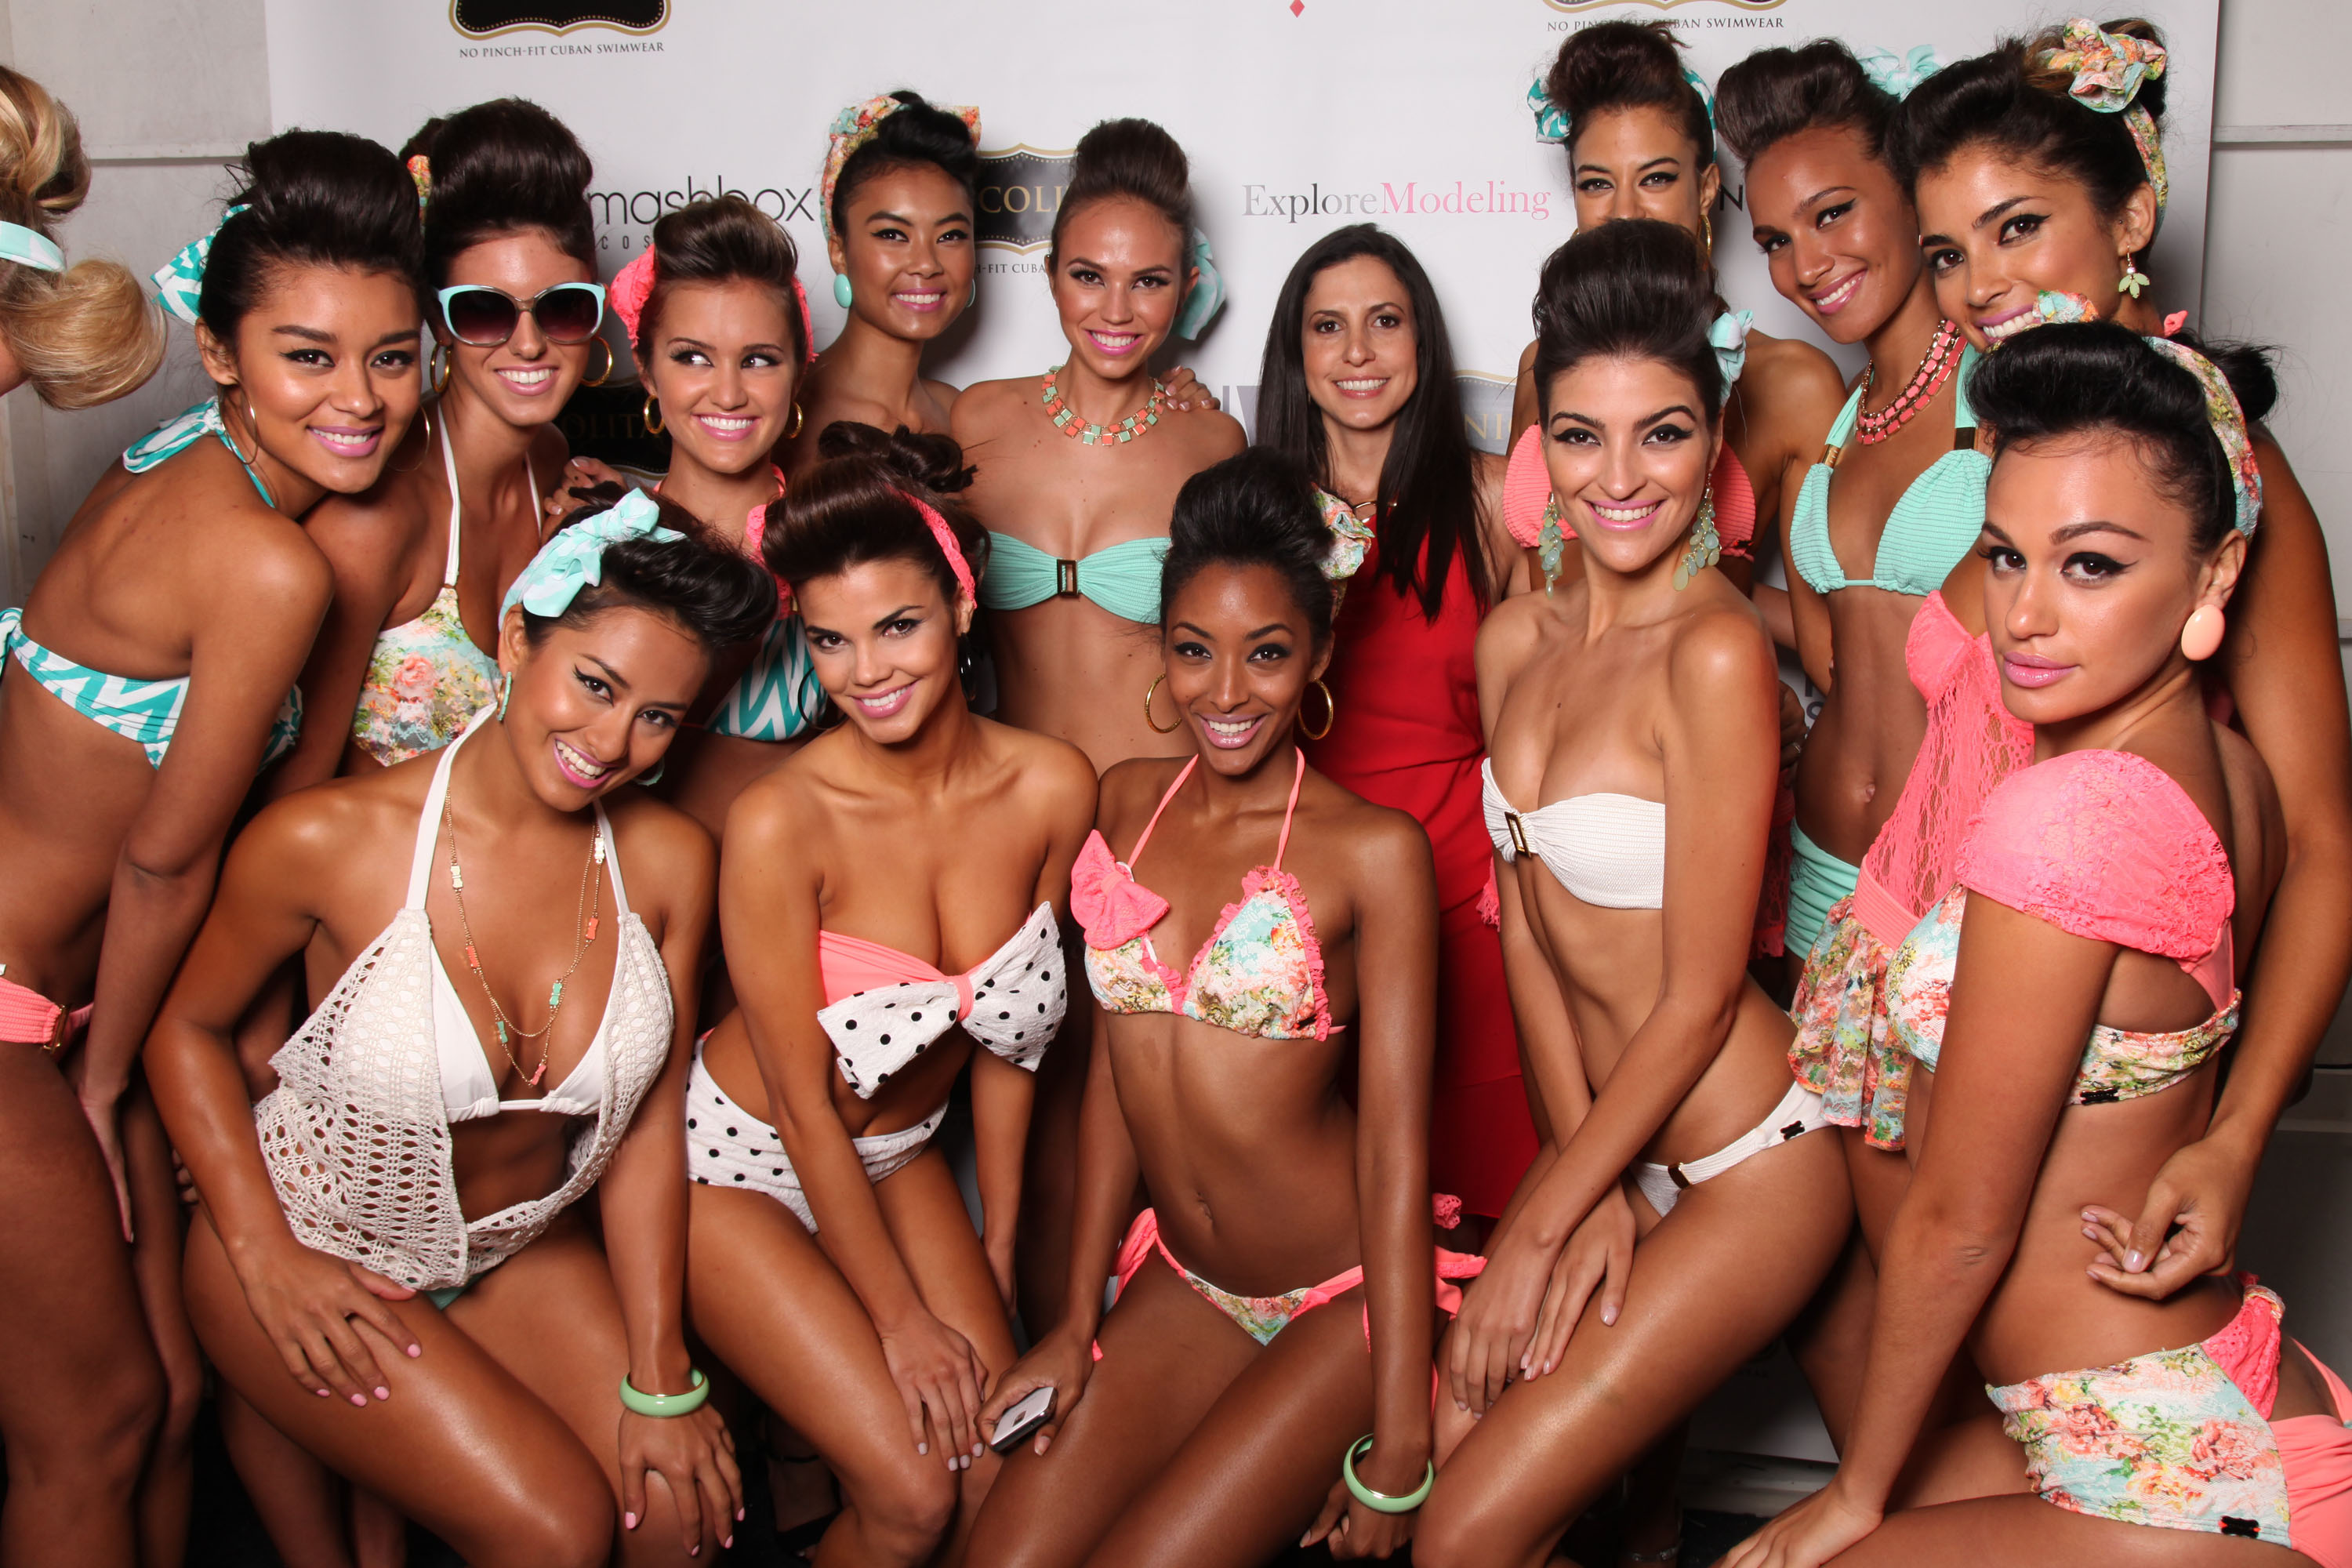 Designer Nicole Di Rocco, center in red, poses with her models backstage after the Nicolita runway show on Day 3 of Mercedes-Benz Fashion Week Swim 2014 at The Raleigh Hotel on Saturday, July 20, 2013 in Miami Beach, FL. (Photo by Omar Vega/Invision/AP Images)